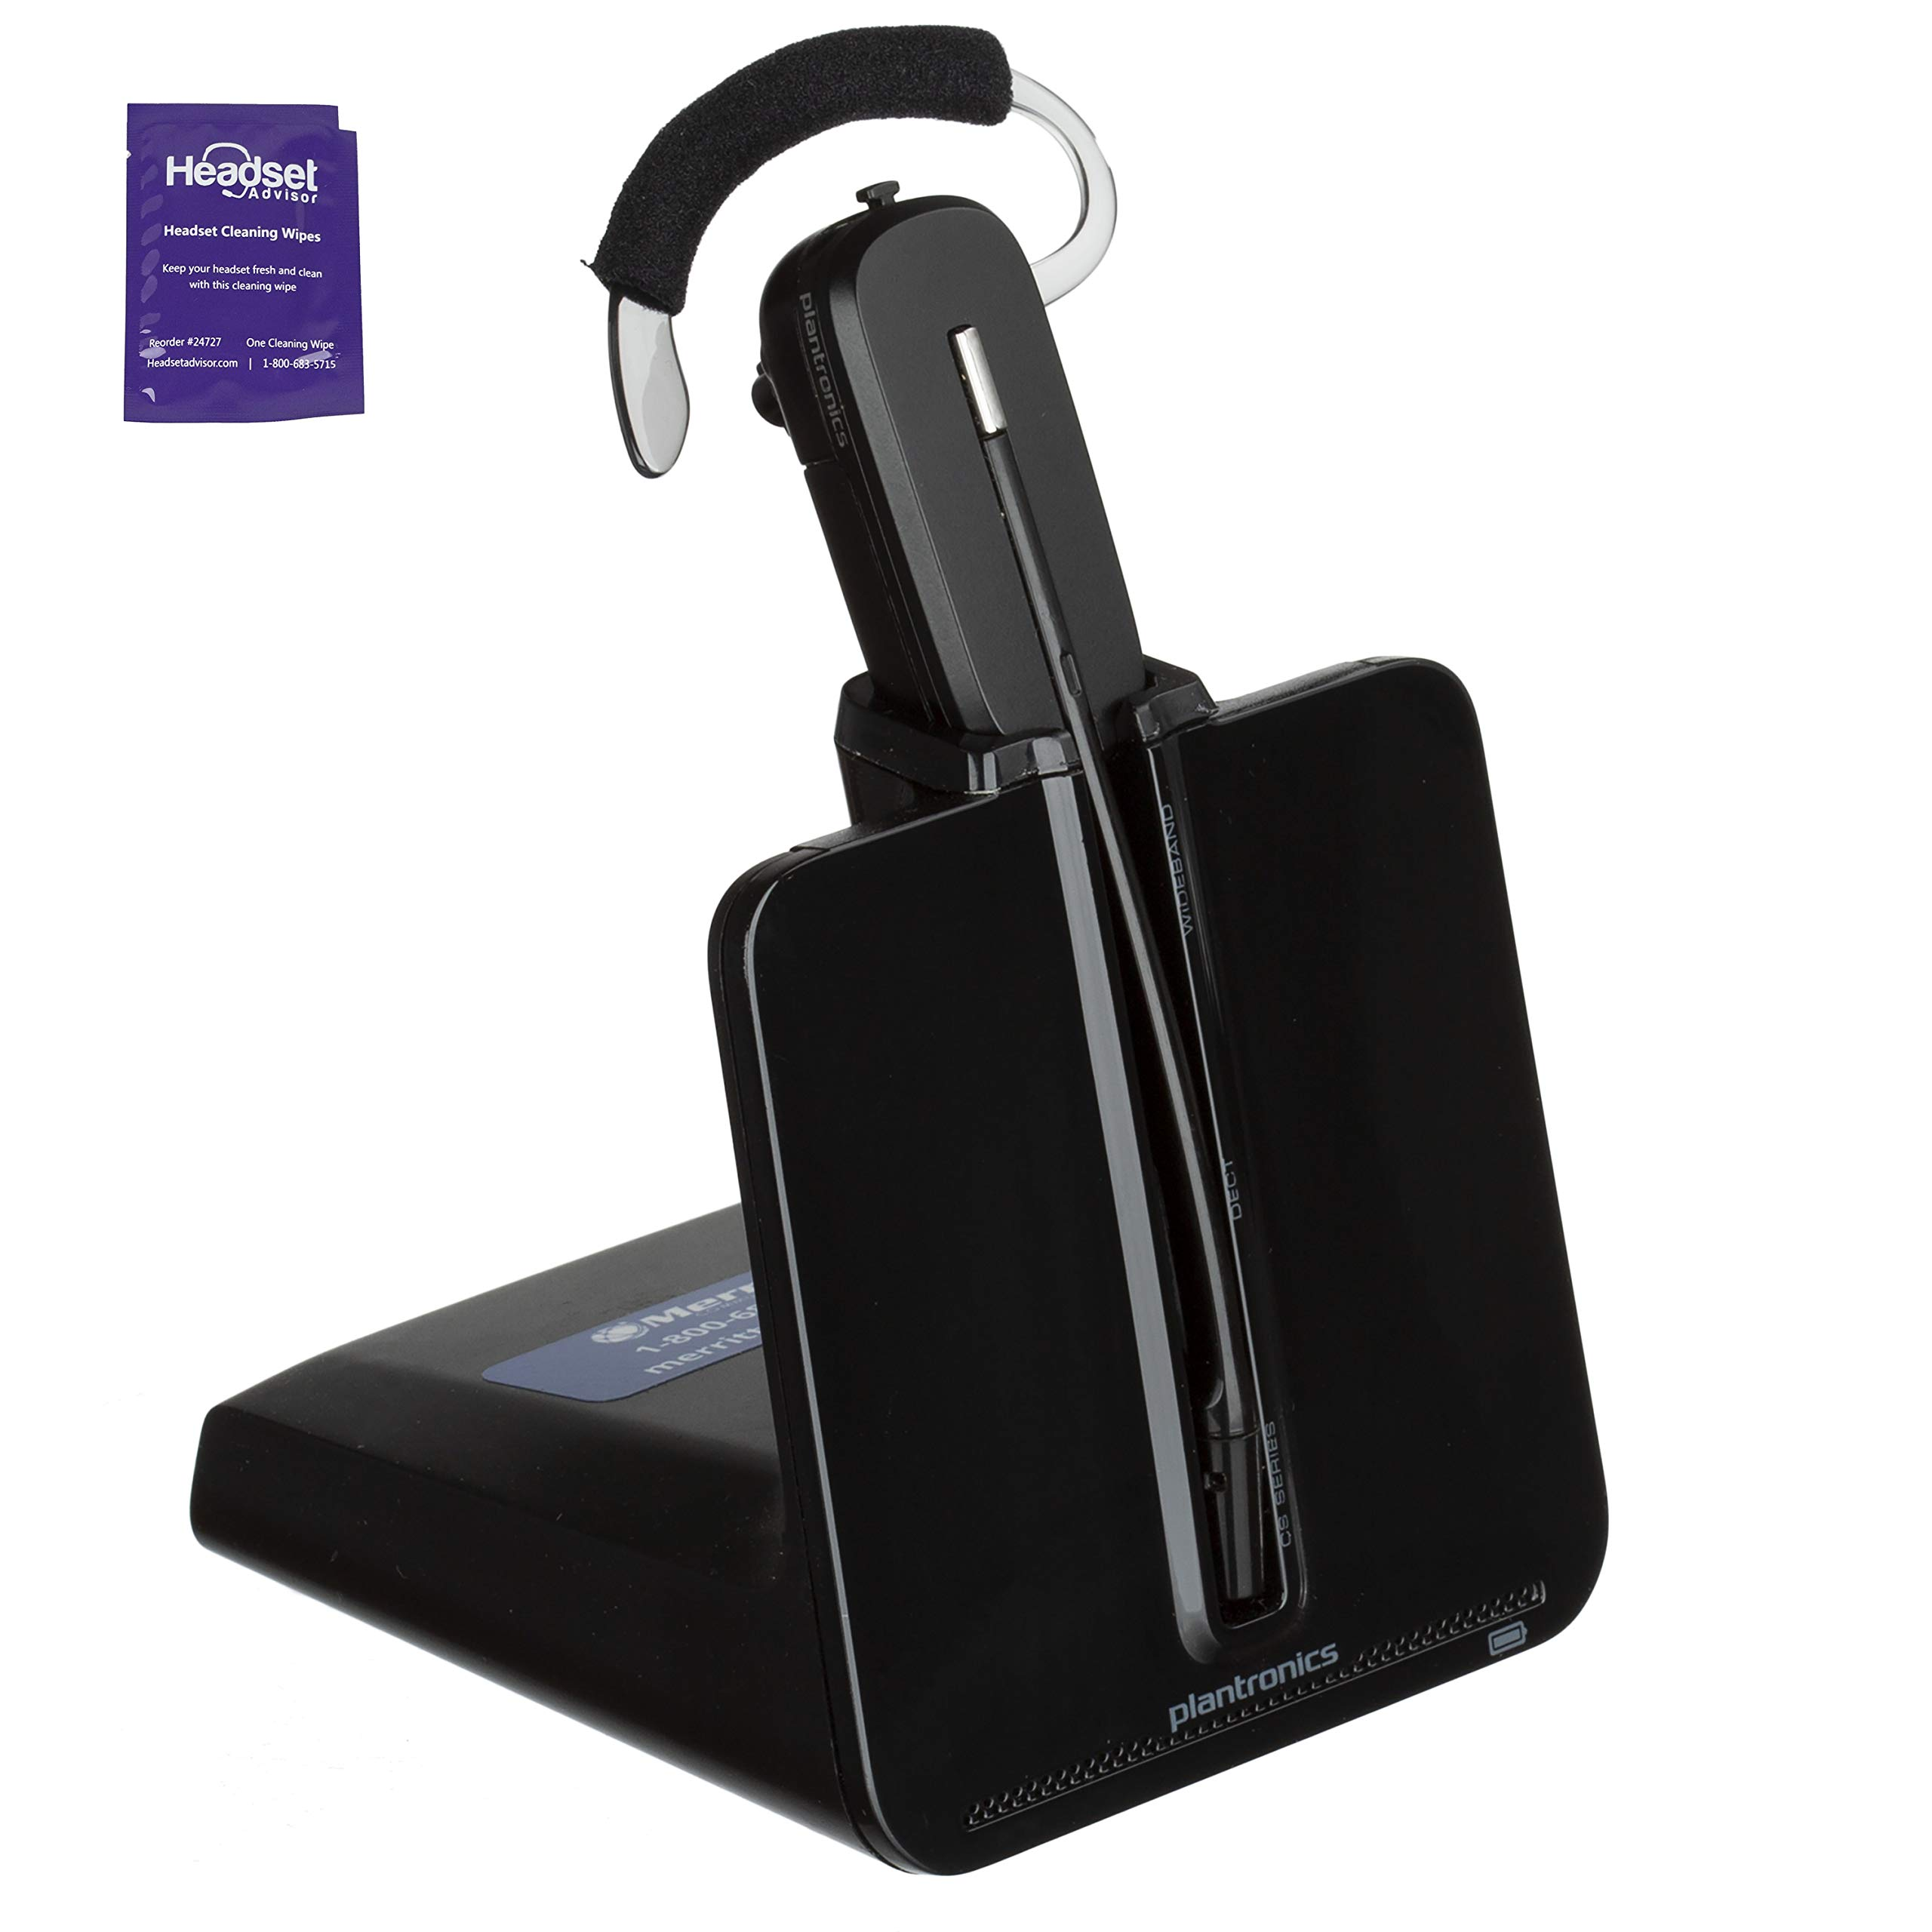 Plantronics CS540 Wireless Office Headset Bundle with Headset Advisor Wipe (Renewed) by Plantronics